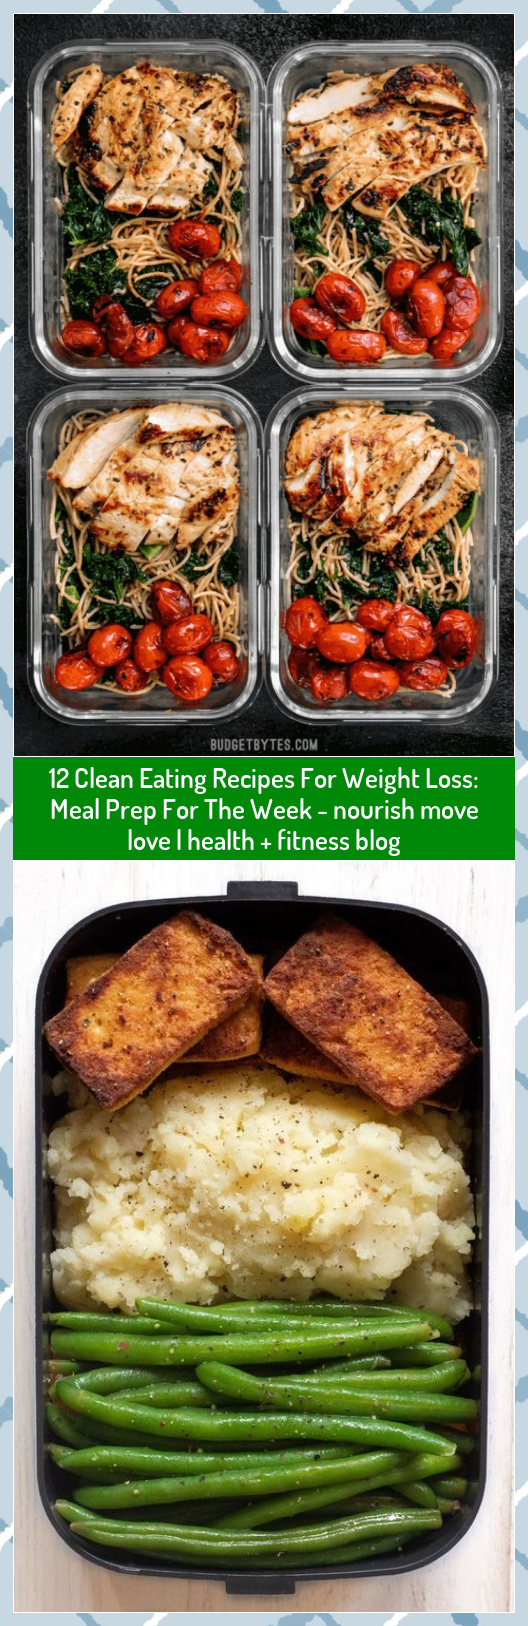 12 Clean Eating Recipes For Weight Loss: Meal Prep For The Week - nourish move love | health + fitne...